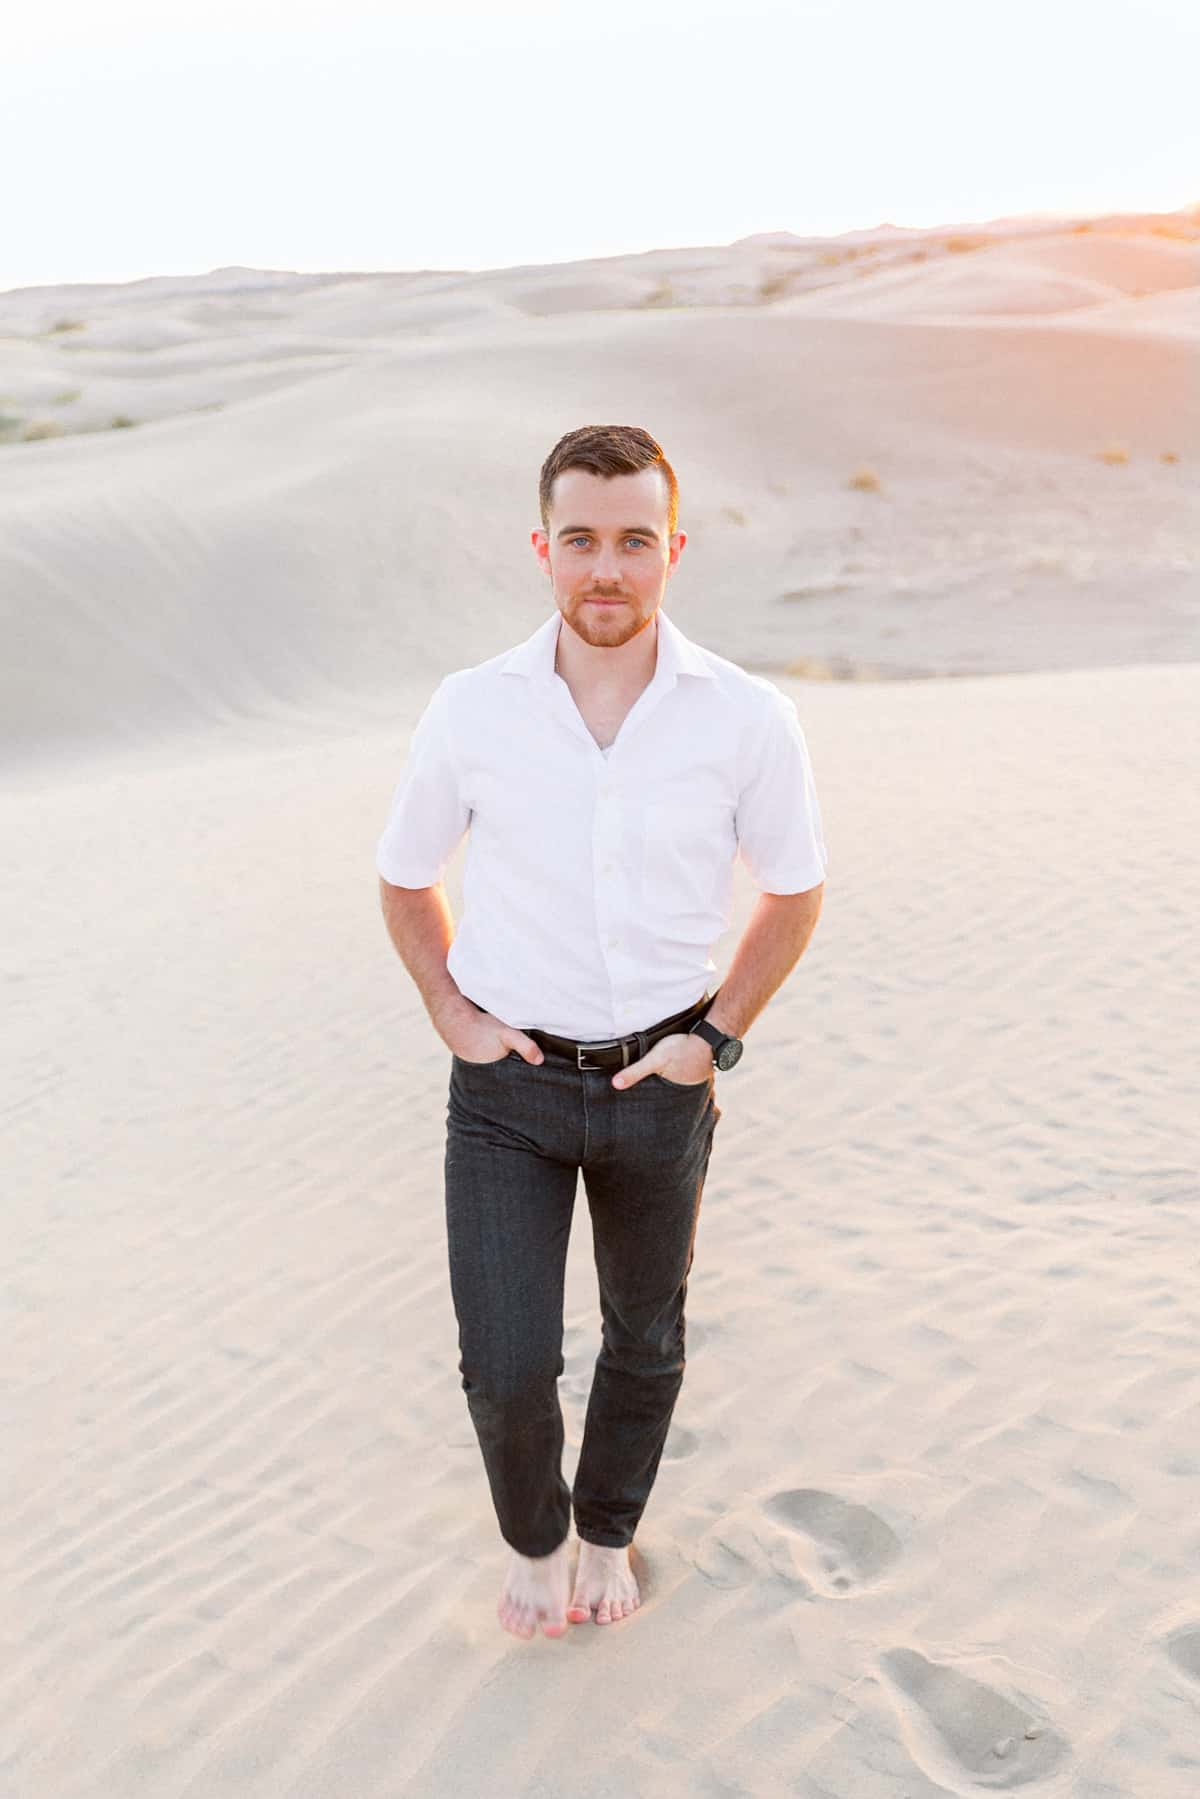 What to wear for engagement pictures, white shirt with black jeans, desert photography, guys outfit, groom outfit